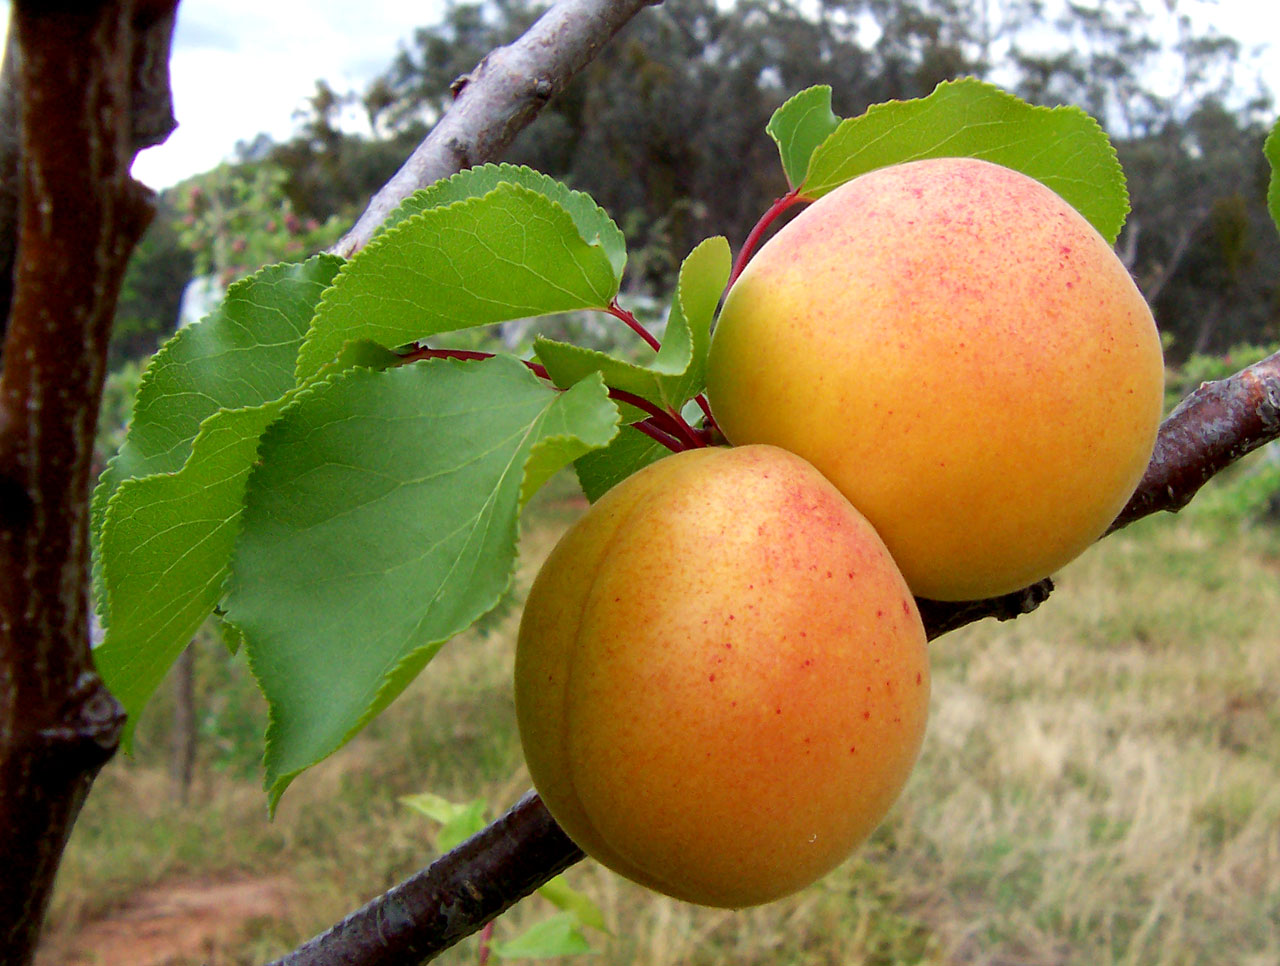 File:Apricots.jpg - Wikipedia, the free encyclopedia